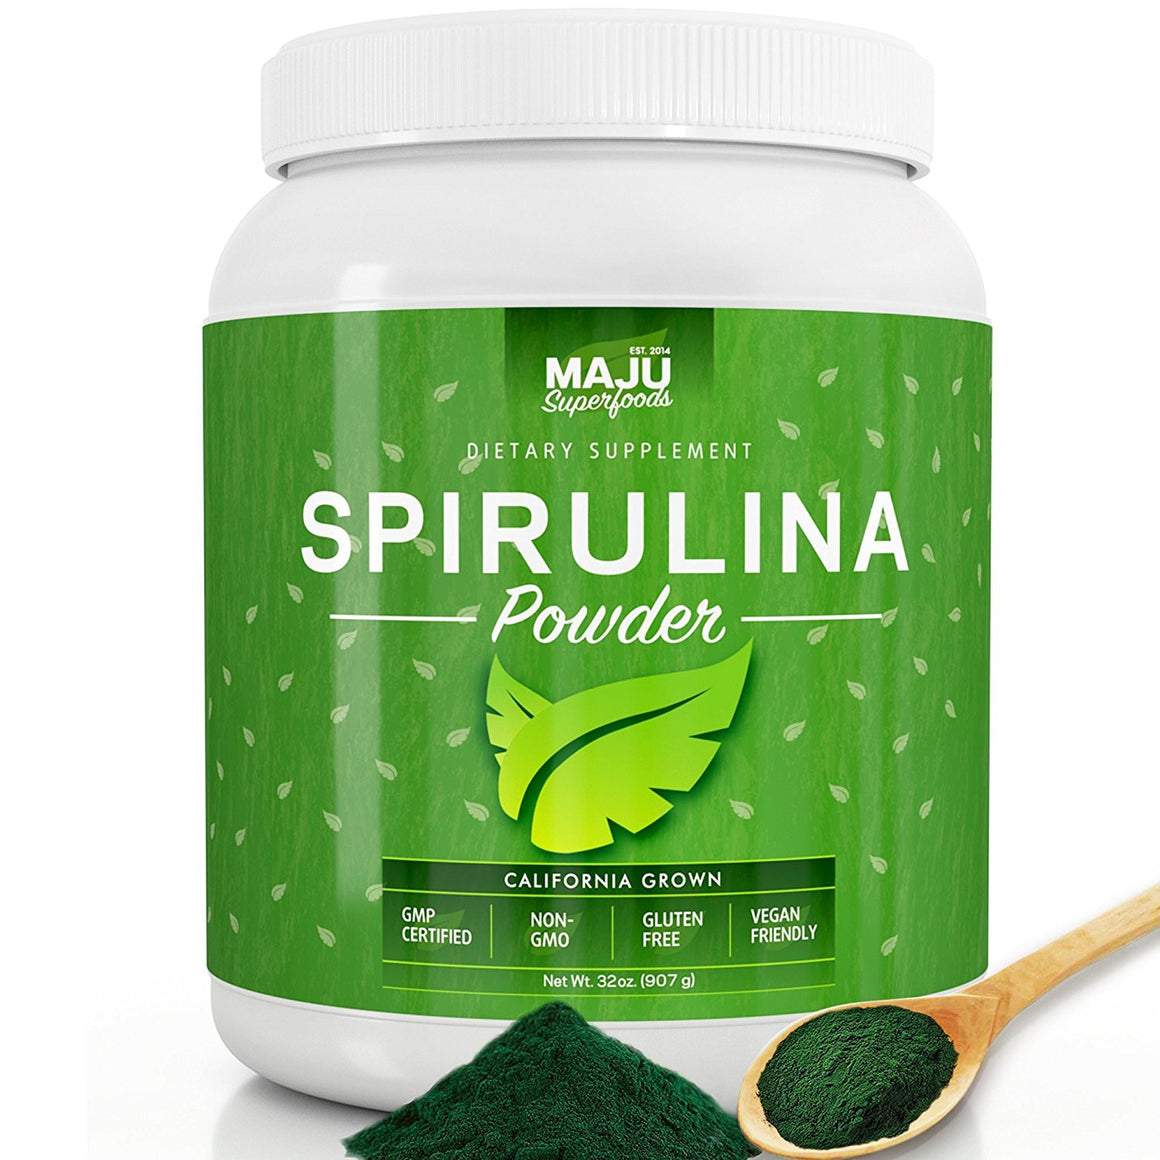 MAJU's California Grown Spirulina Powder (2 POUND): Non-Irradiated, Non-GMO, Vegan, Gluten-free - Maju Superfoods